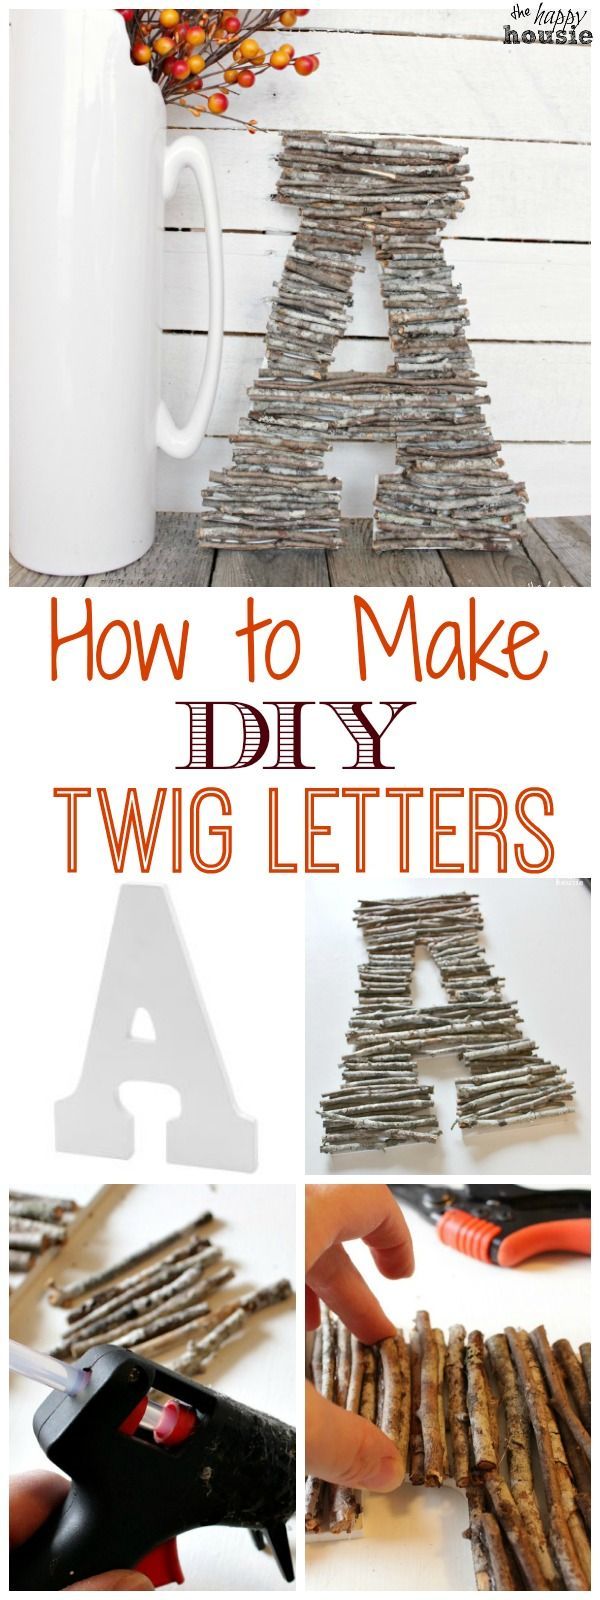 DIY facile - comment fabriquer des lettres avec des petites branches de bois flotté ♥ Easy DIY - how to make letters from twigs ot little branches of drift wood ♥